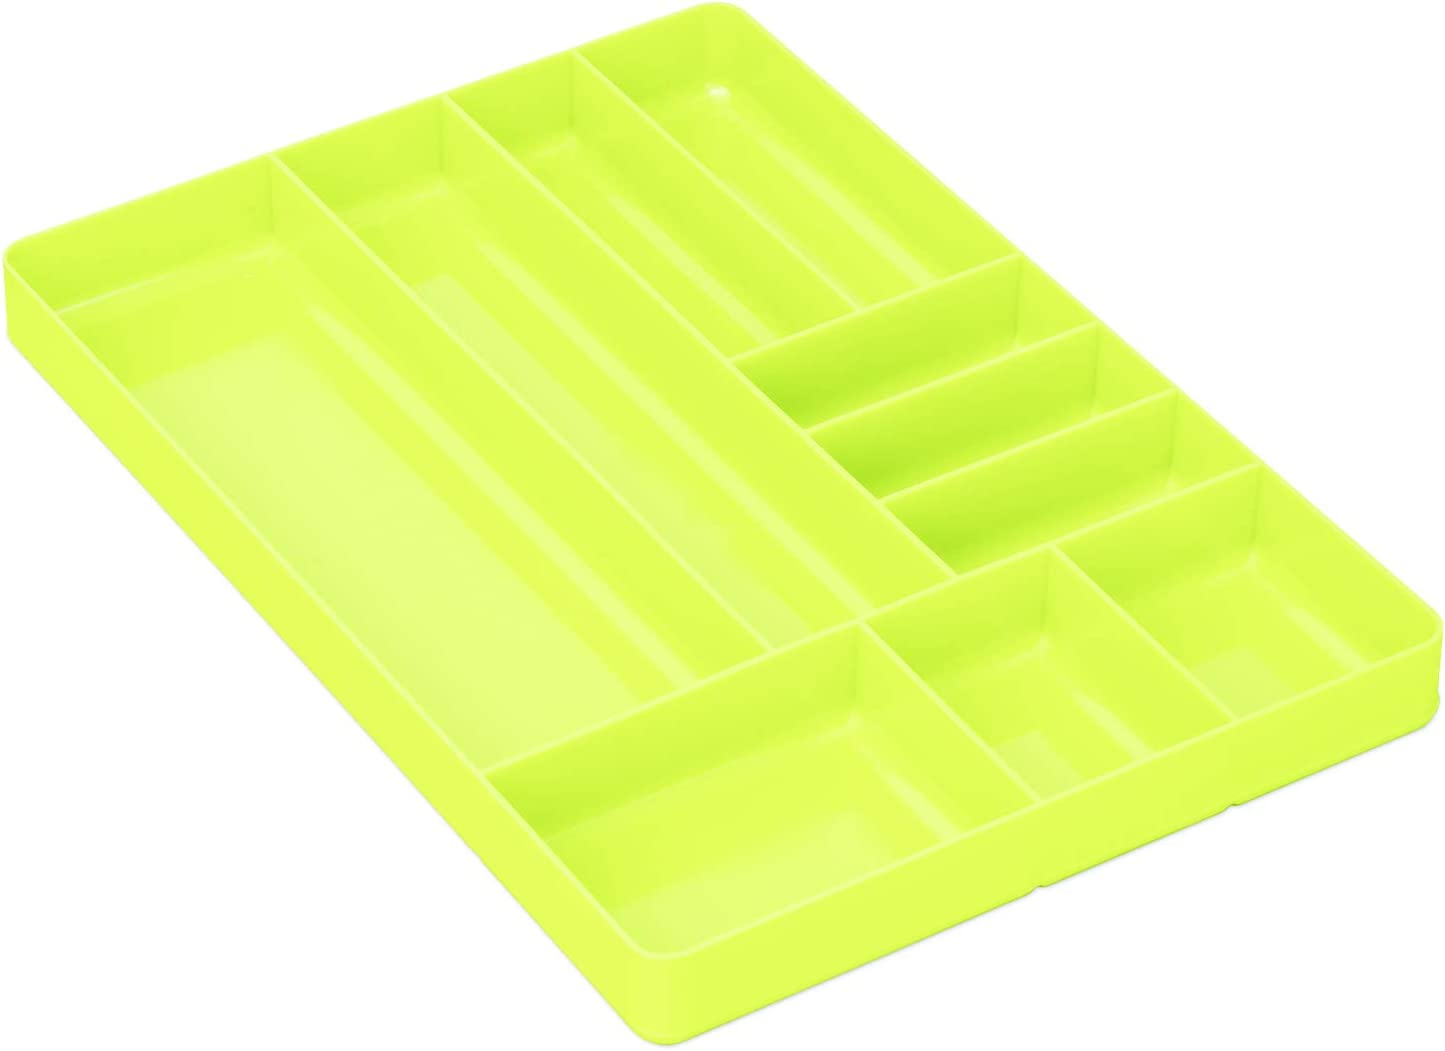 Ernst Manufacturing 5017HV Home and Garage Organizer Tray, 10-Compartments, High-Visibility